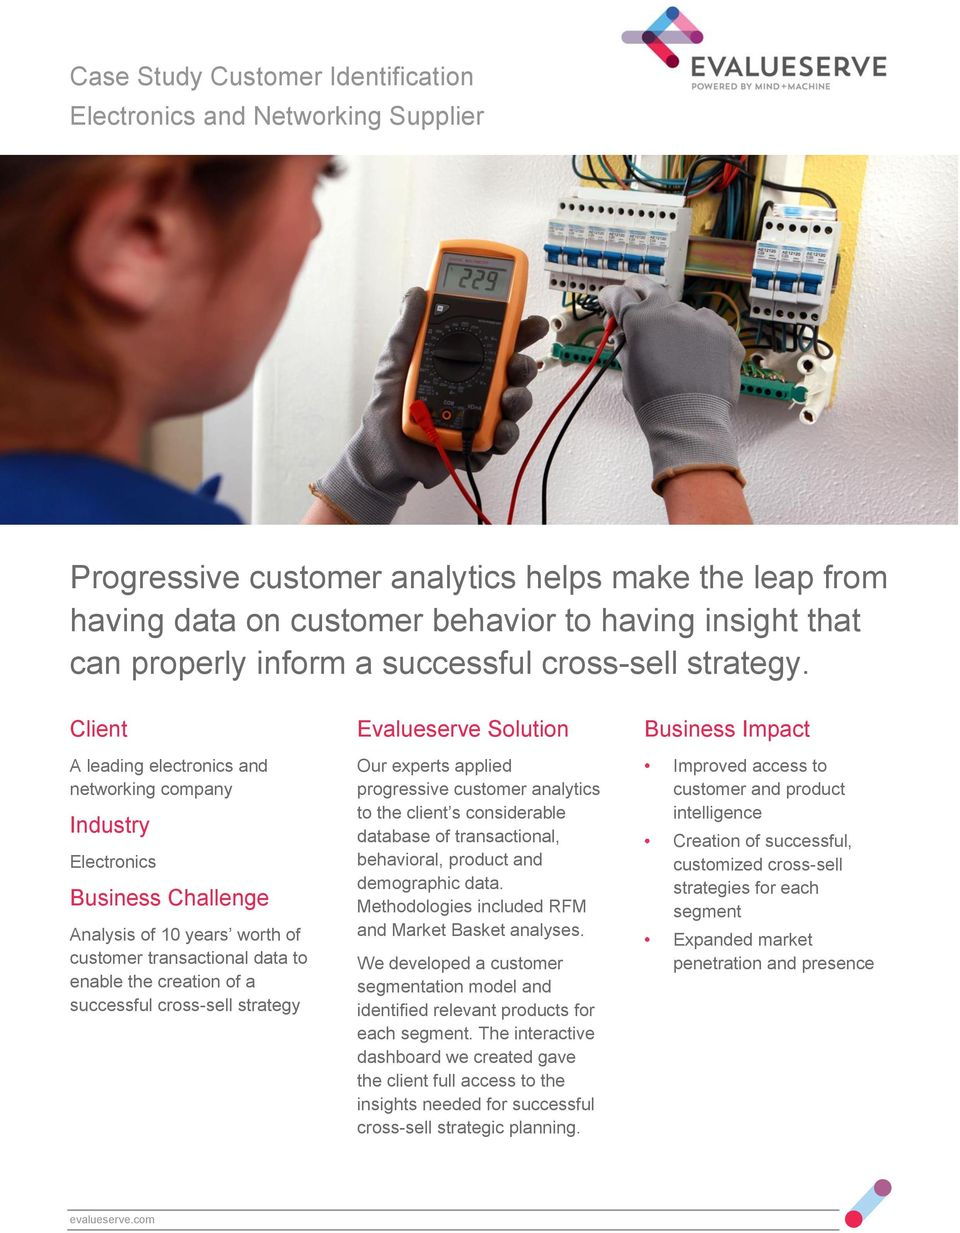 Client A leading electronics and networking company Industry Electronics Analysis of 10 years worth of customer transactional data to enable the creation of a successful cross-sell strategy Our